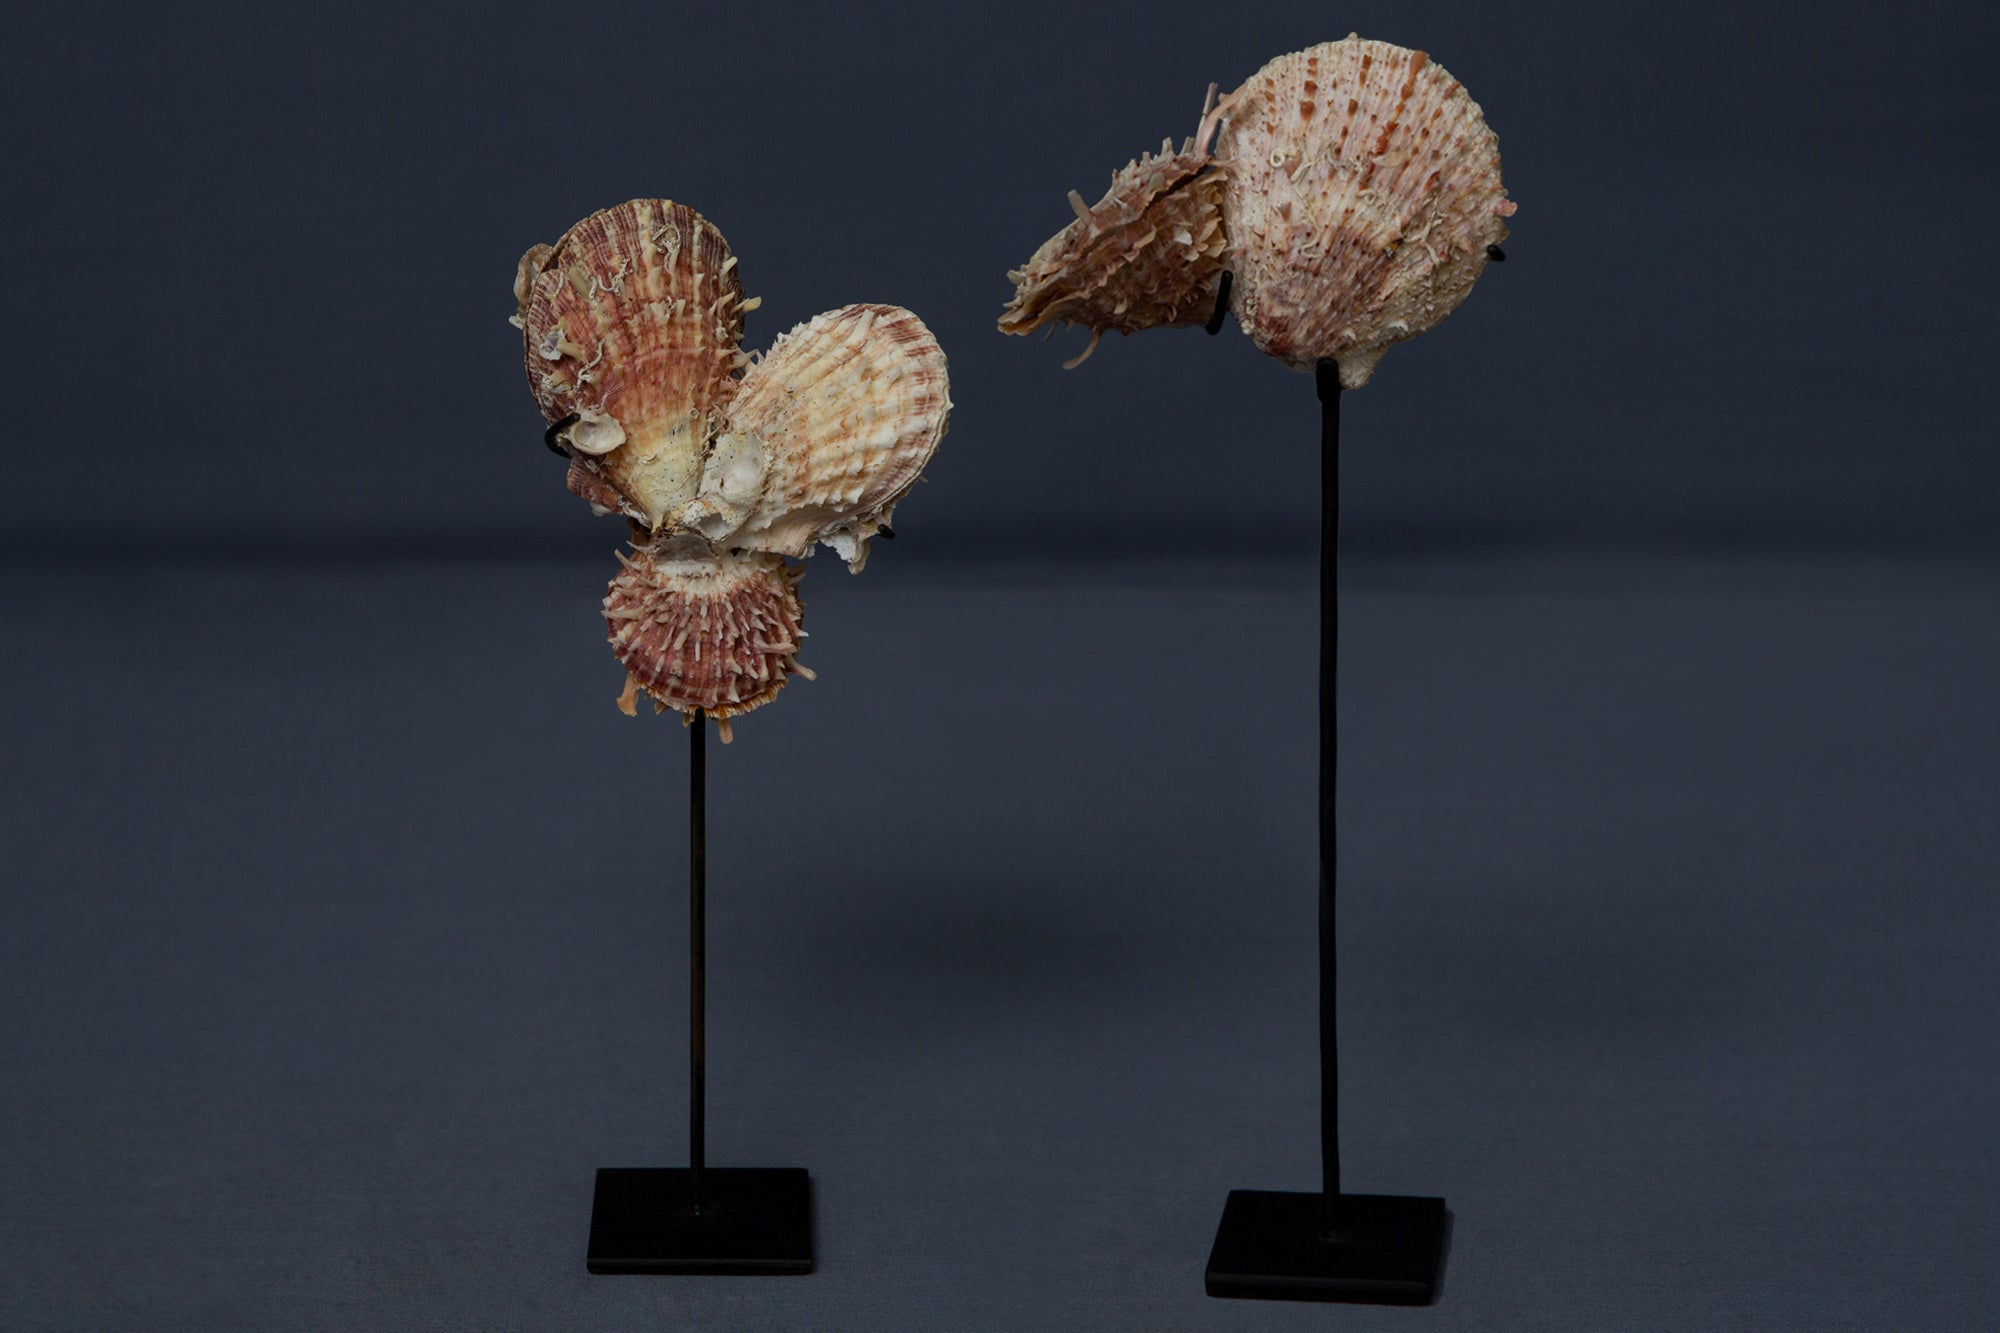 Pair of Multi-Spiny Clam Shells mounted on stands